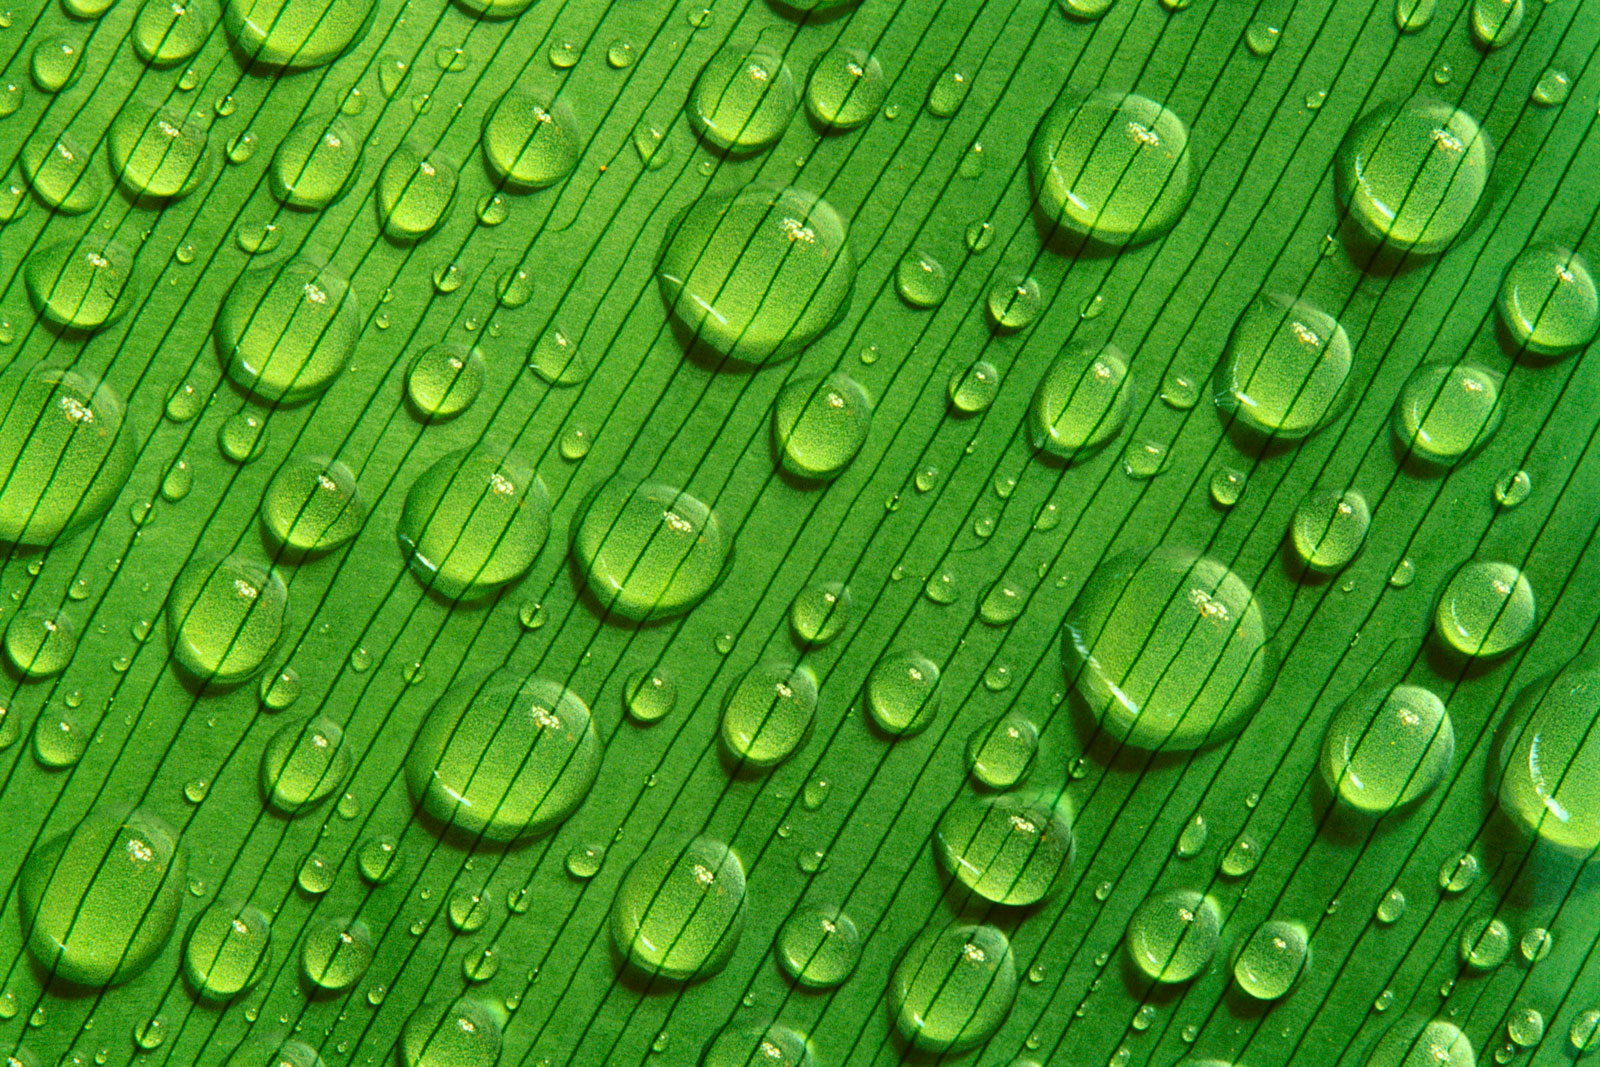 Raindrops on Leaf, Peru 1992